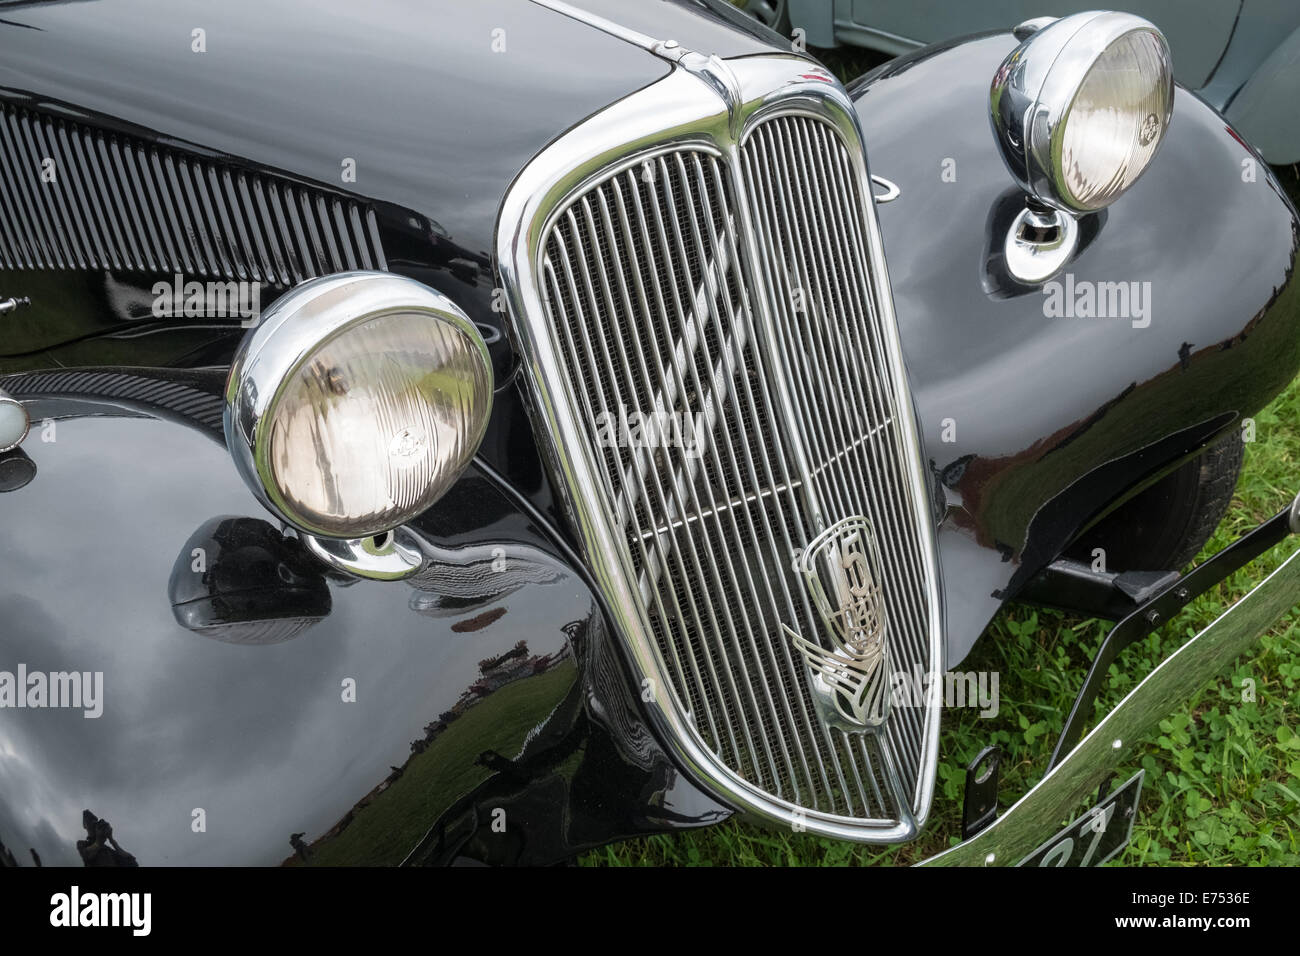 Headlamps and radiator grille on an antique black Citroen saloon car - Stock Image